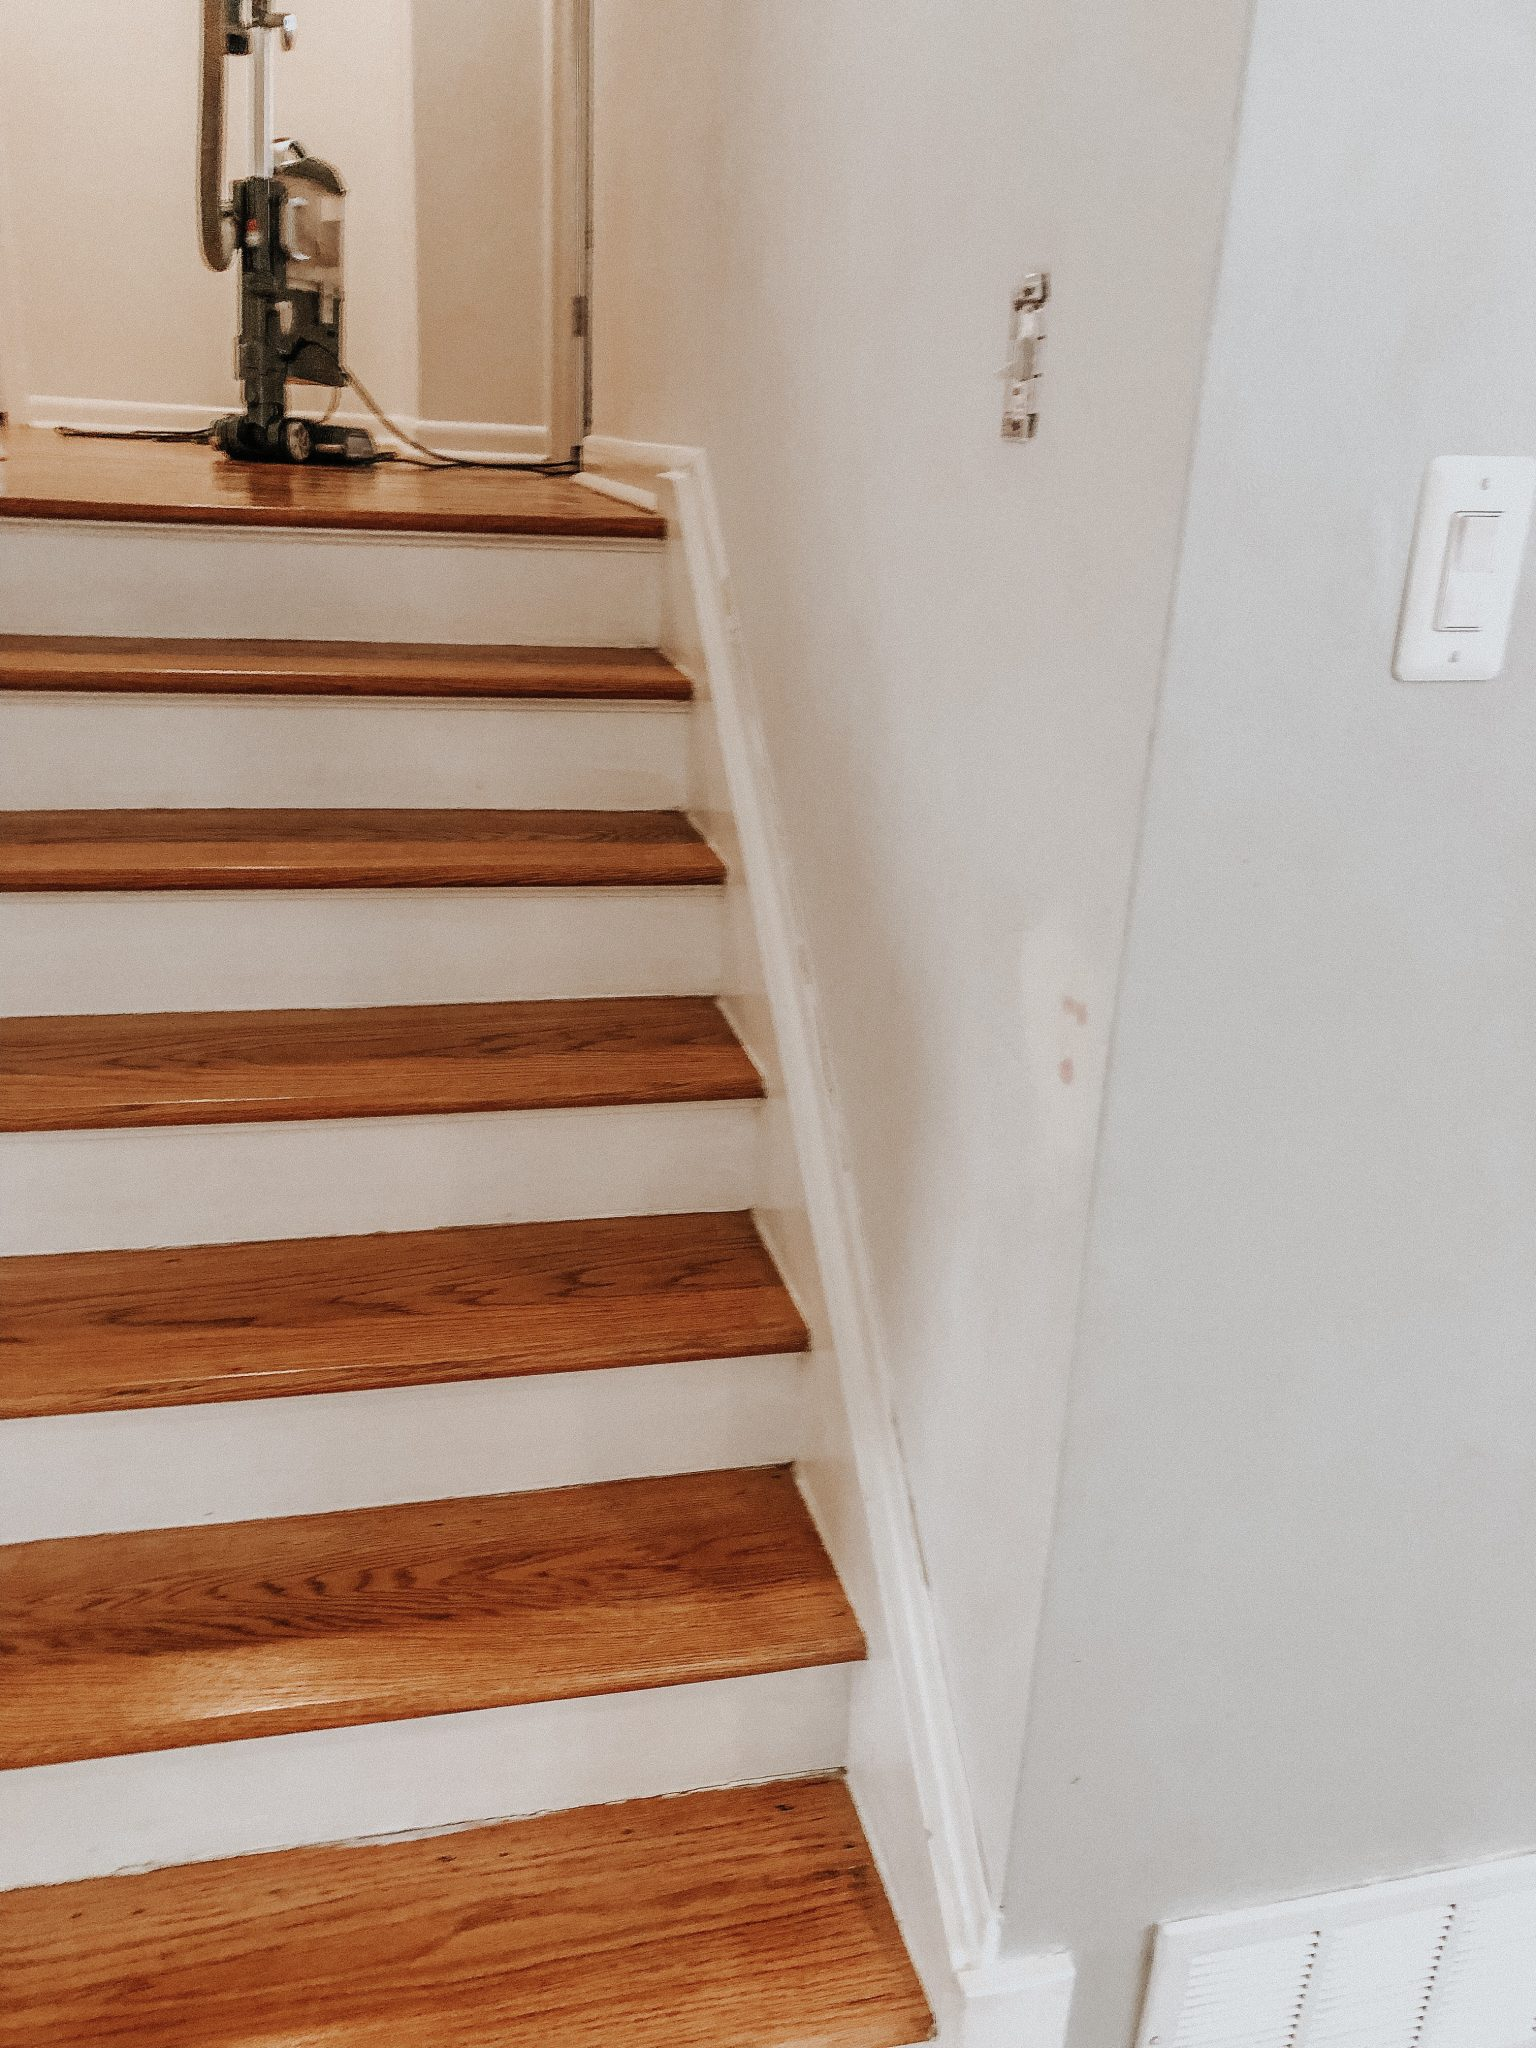 Hallway makeover | Daily Splendor Life and Style | spring update, hallway refresh, painting, #DIY #homeremodel #homedecor #renovations #beforepicture #prep